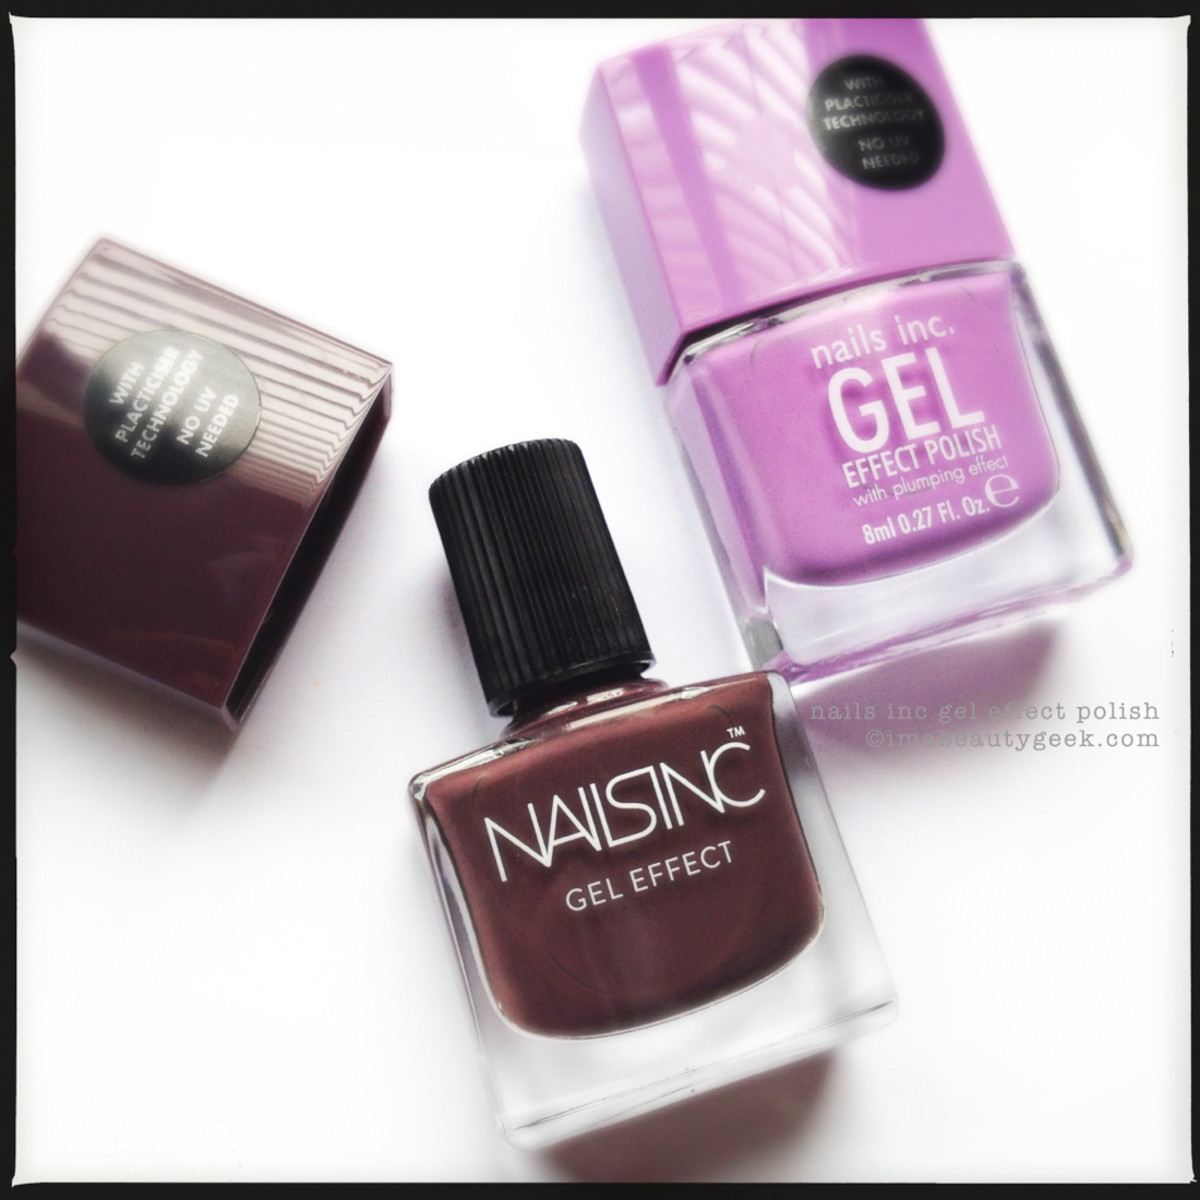 MANI MONDAY: NAILS INC GEL EFFECT POLISH - Beautygeeks